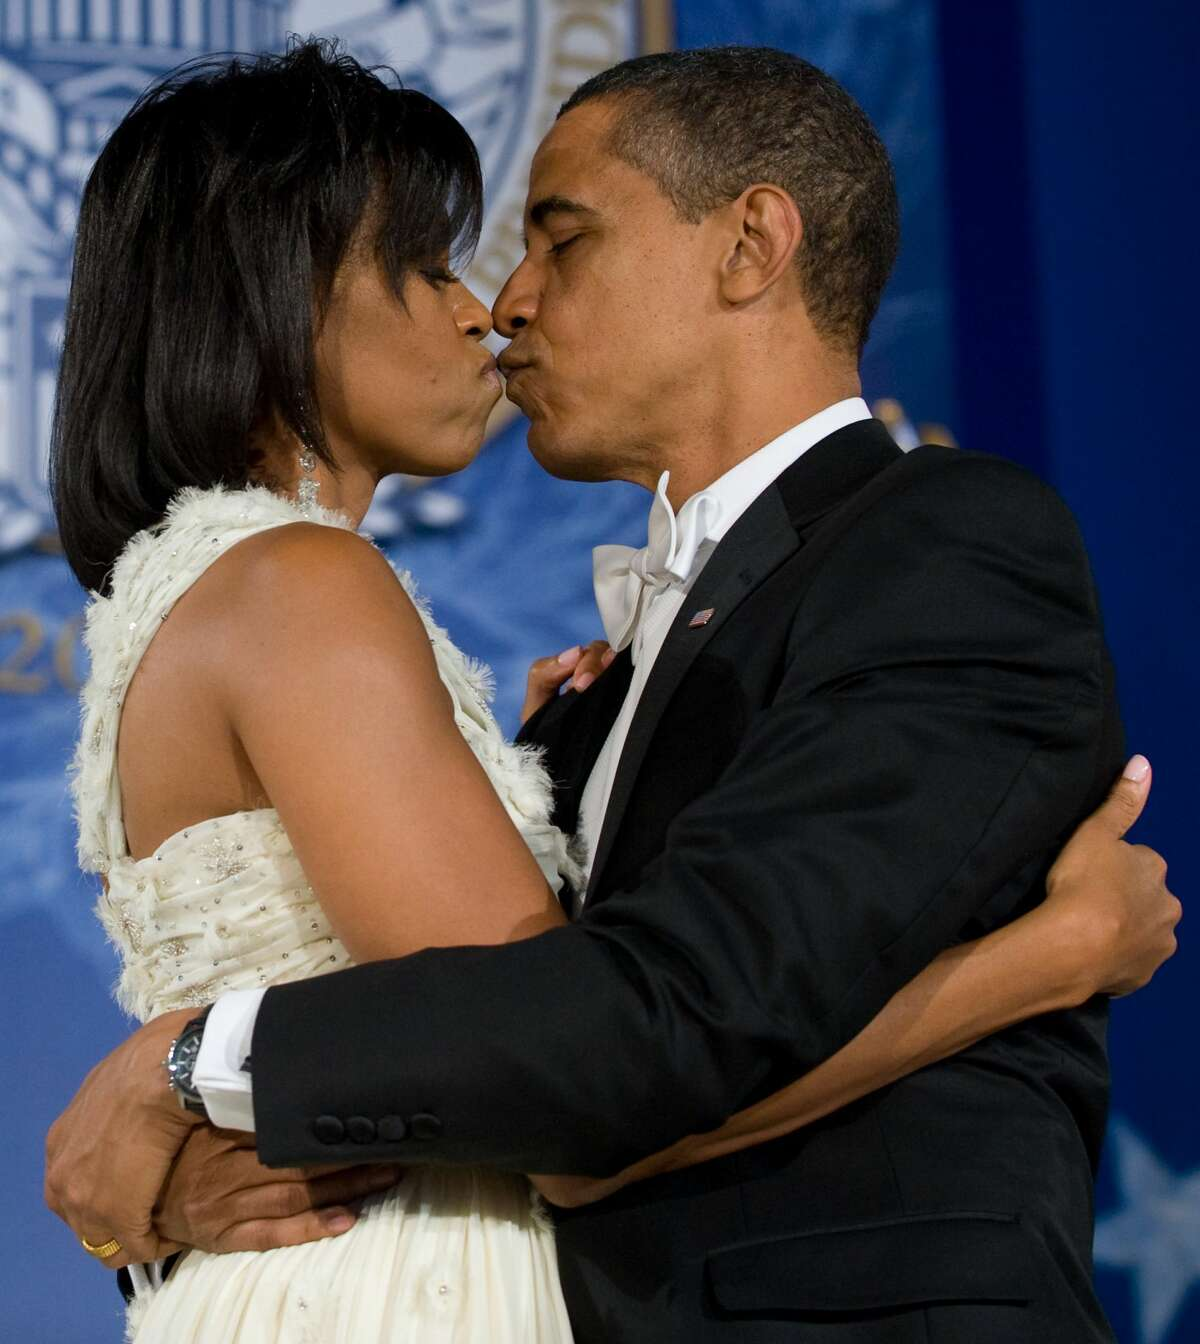 The Obamas have no problem showing affection for each other, even when the world is watching.Keep clicking to see photos of some of their sweetest moments over the years.